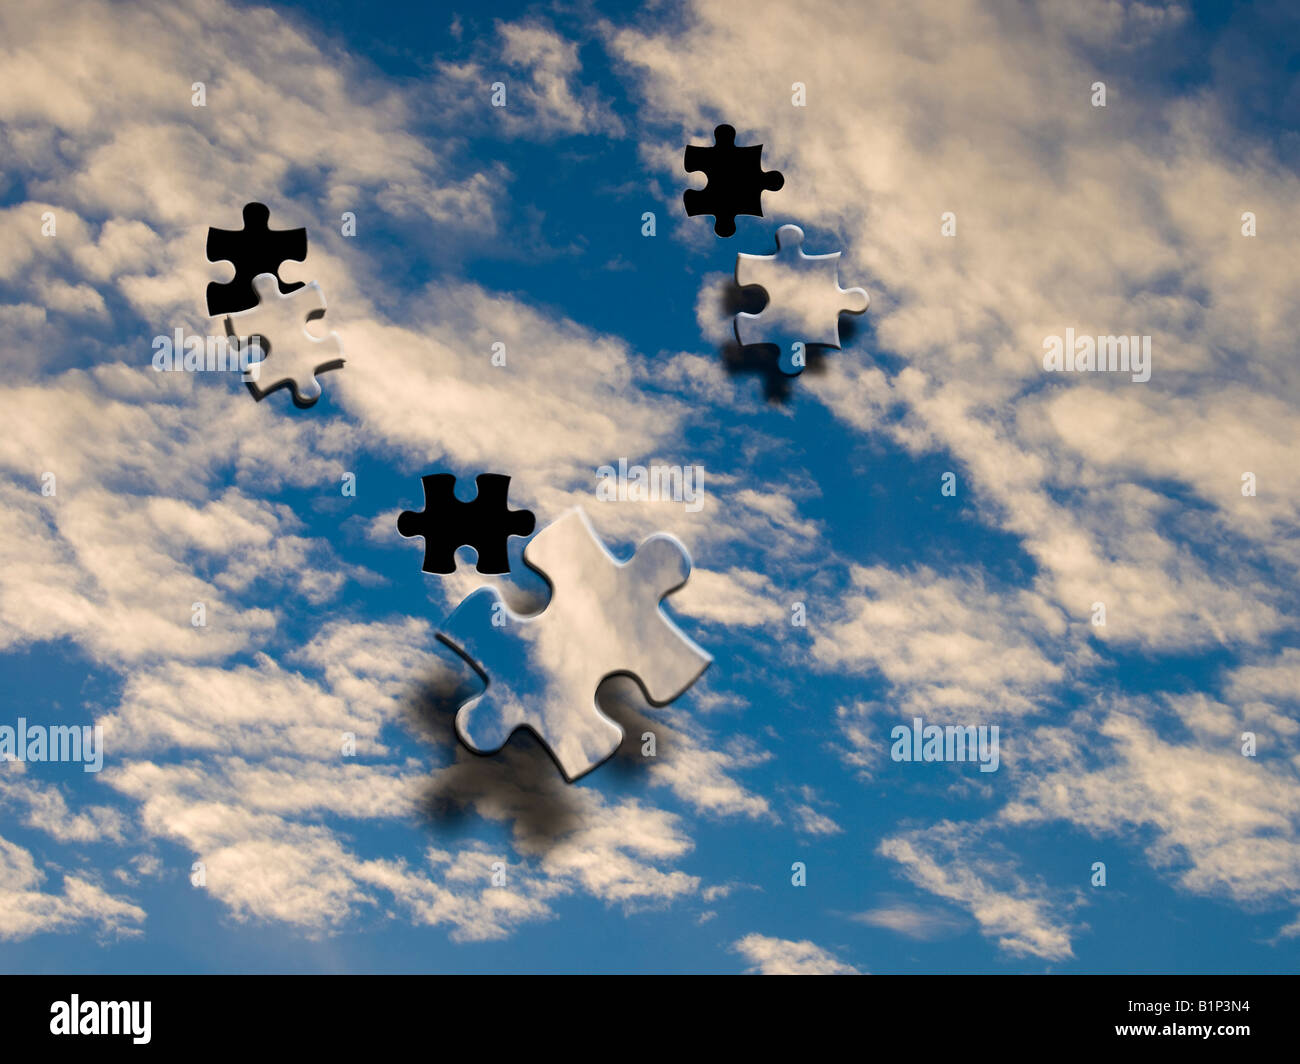 Blue sky image with jigsaw effect - Stock Image